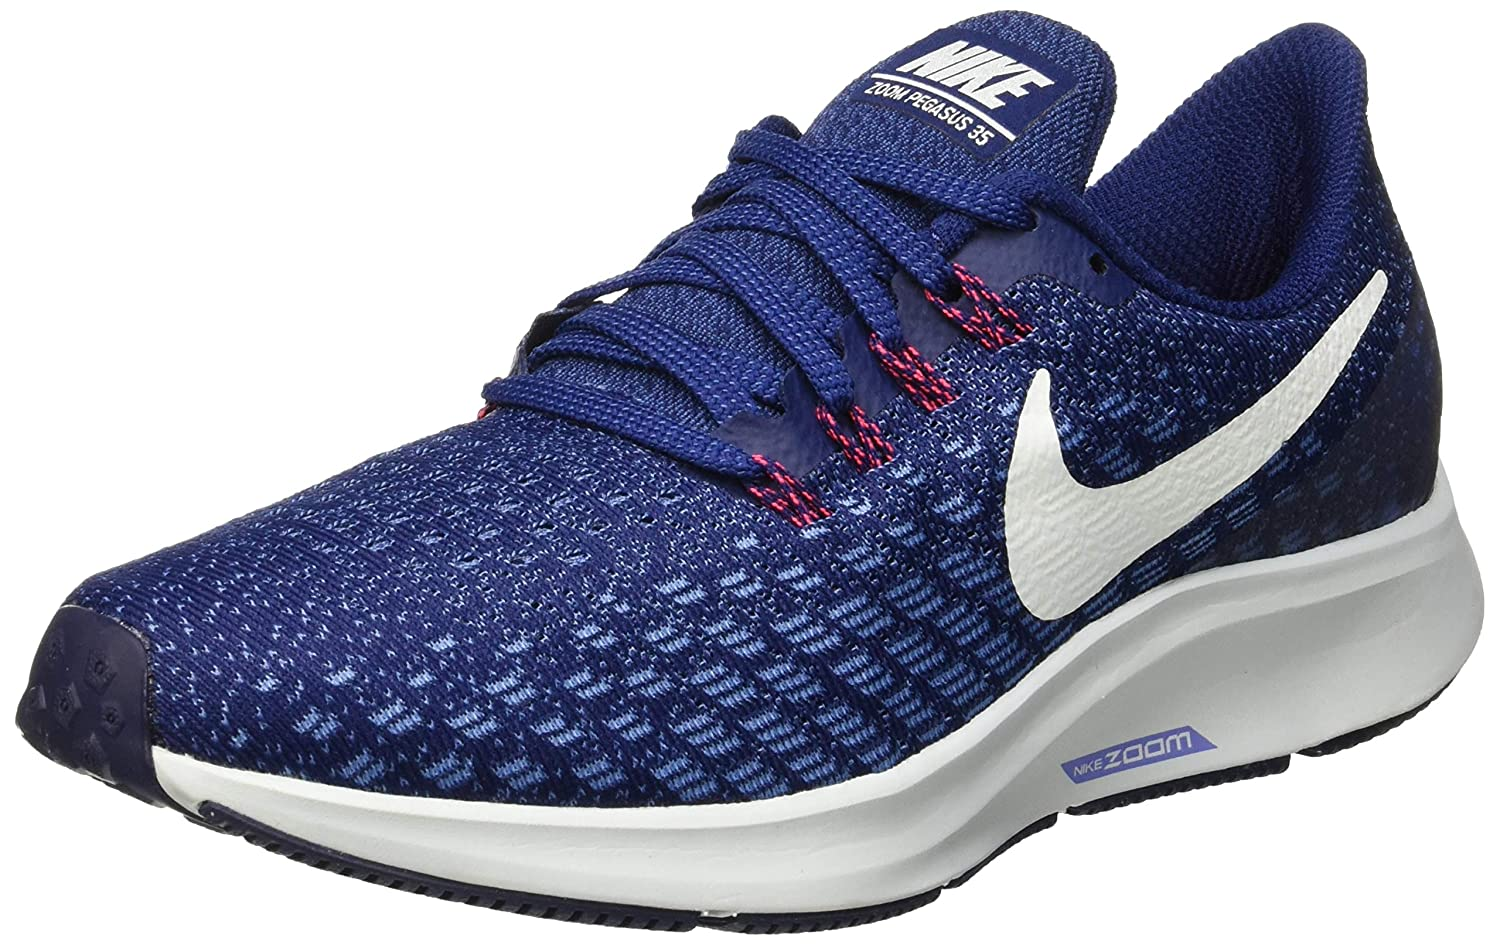 bluee Void Ghost Aqua Indigo Storm Nike Women's Air Zoom Pegasus 35 Running shoes